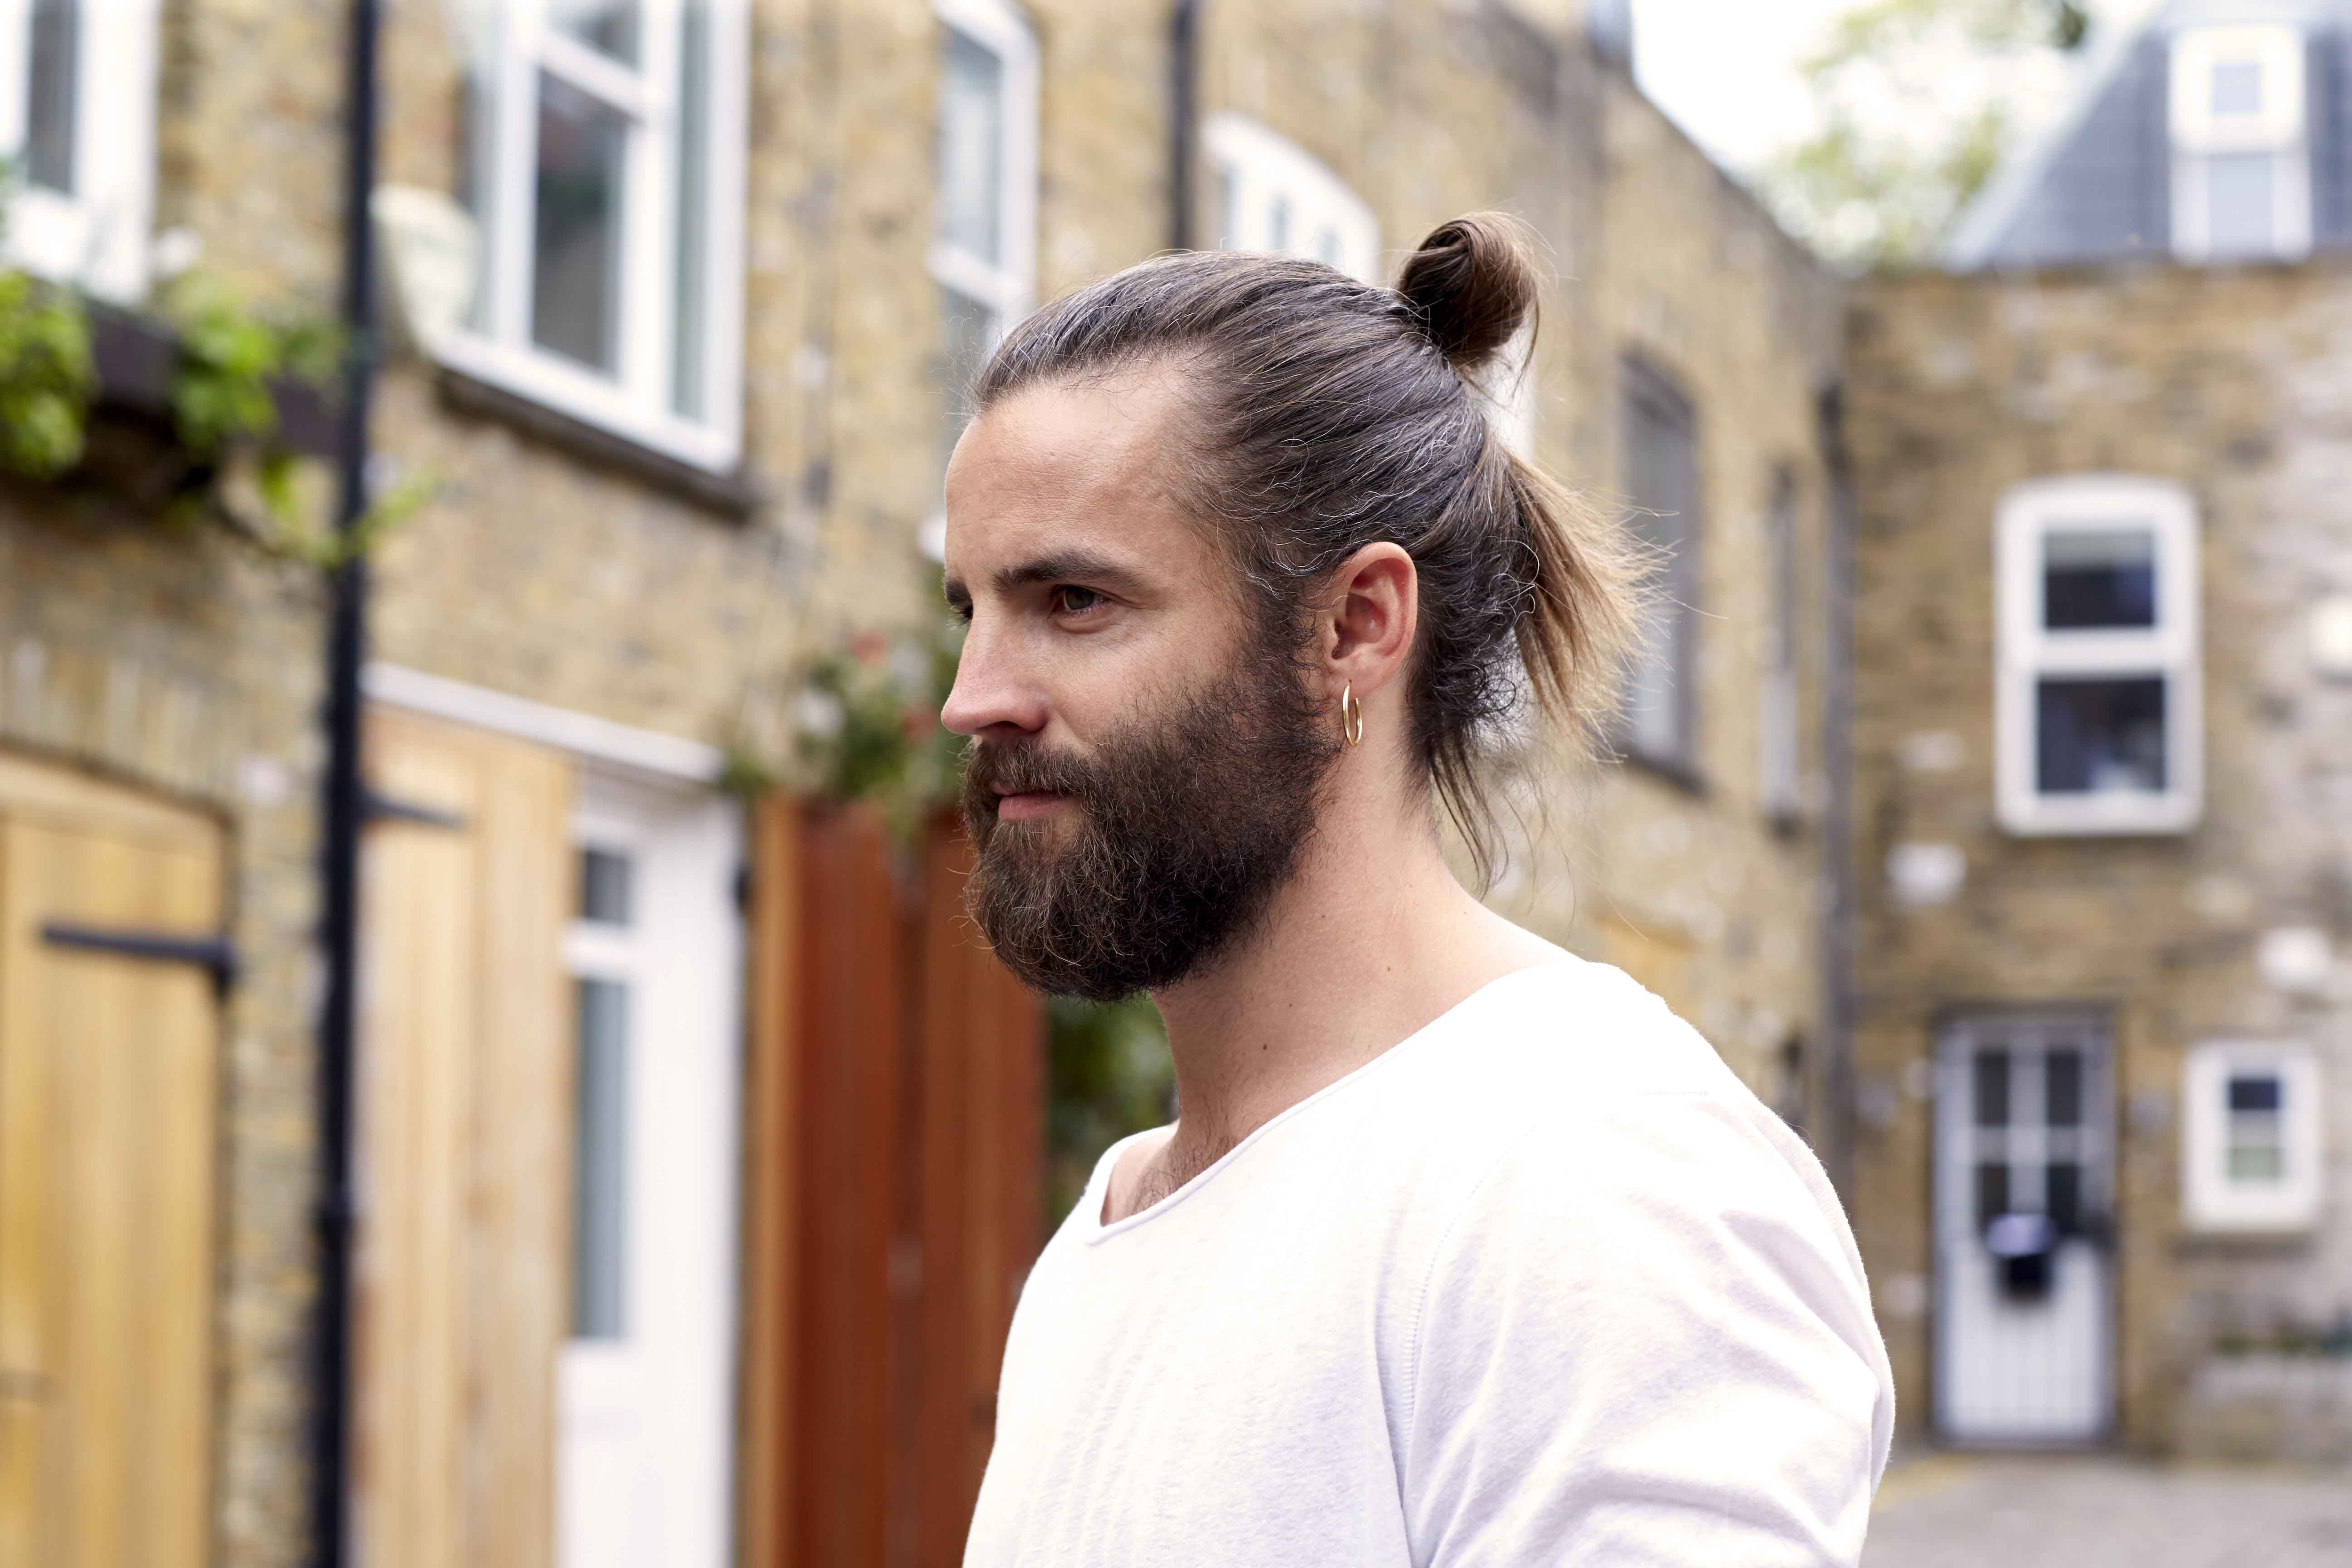 brunette bearded man with a man bun hairstyle